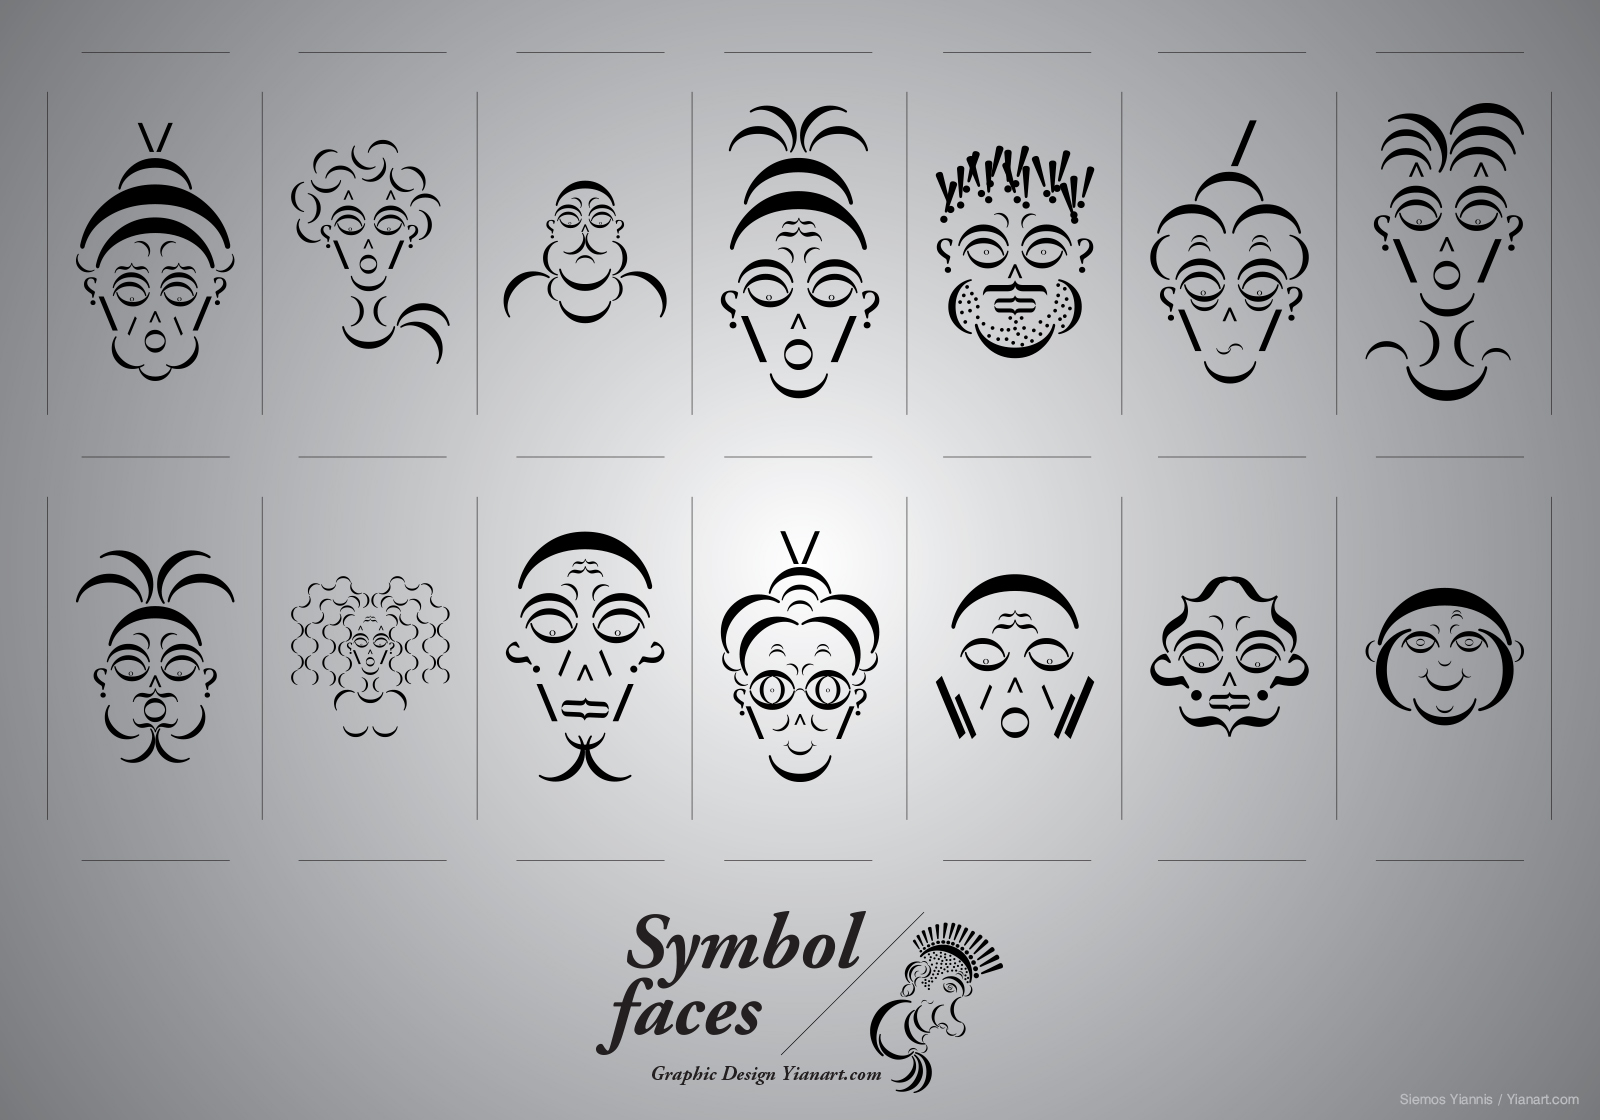 Symbol Faces_All_Yianart.com